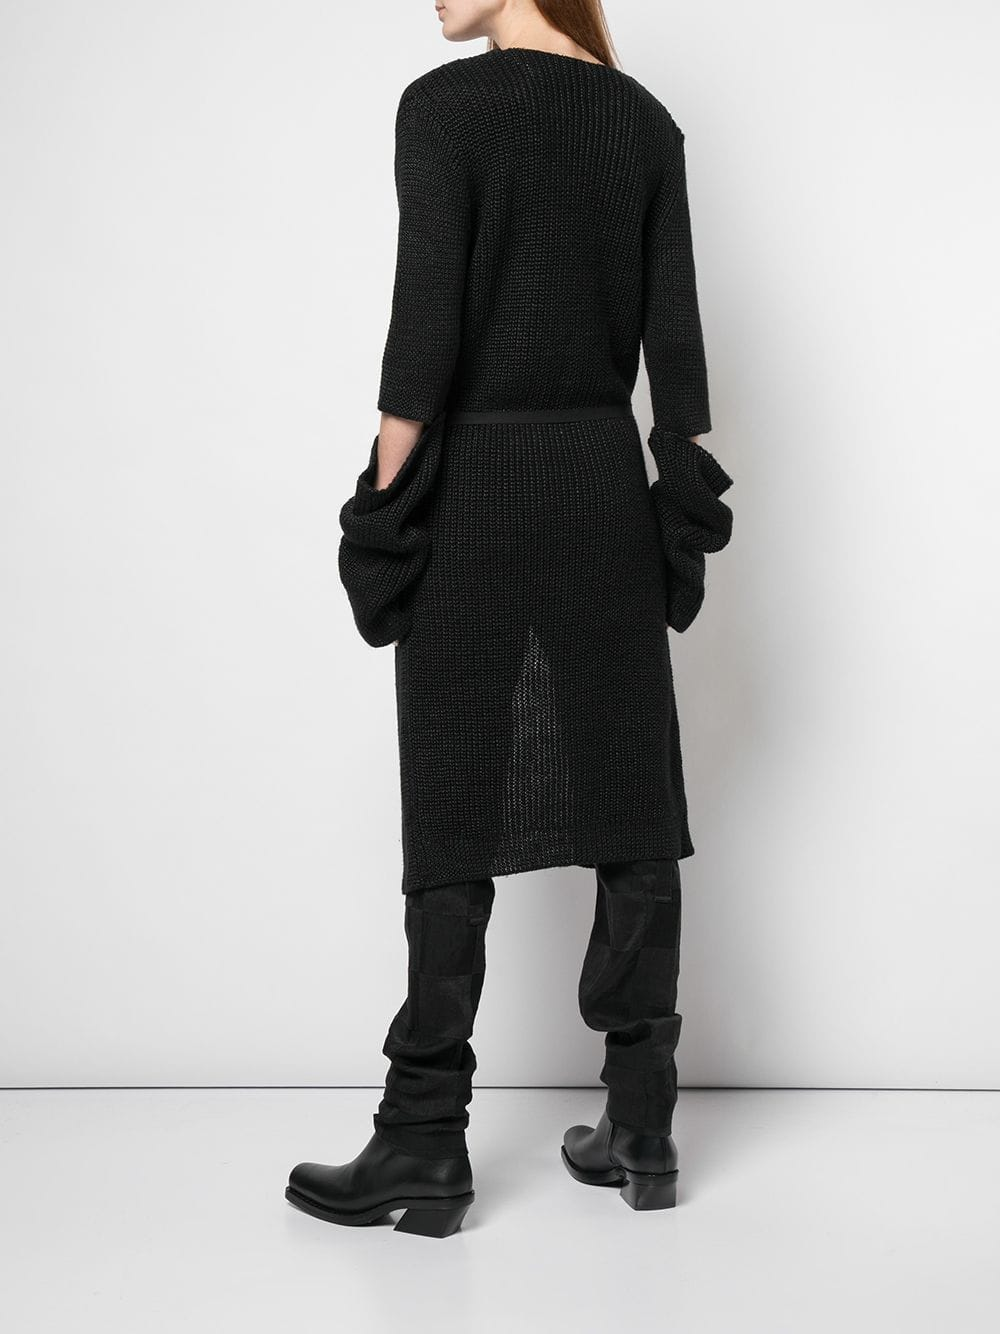 ANN DEMEULEMEESTER WOMEN KNITTED CUT SLEEVES CARDIGAN